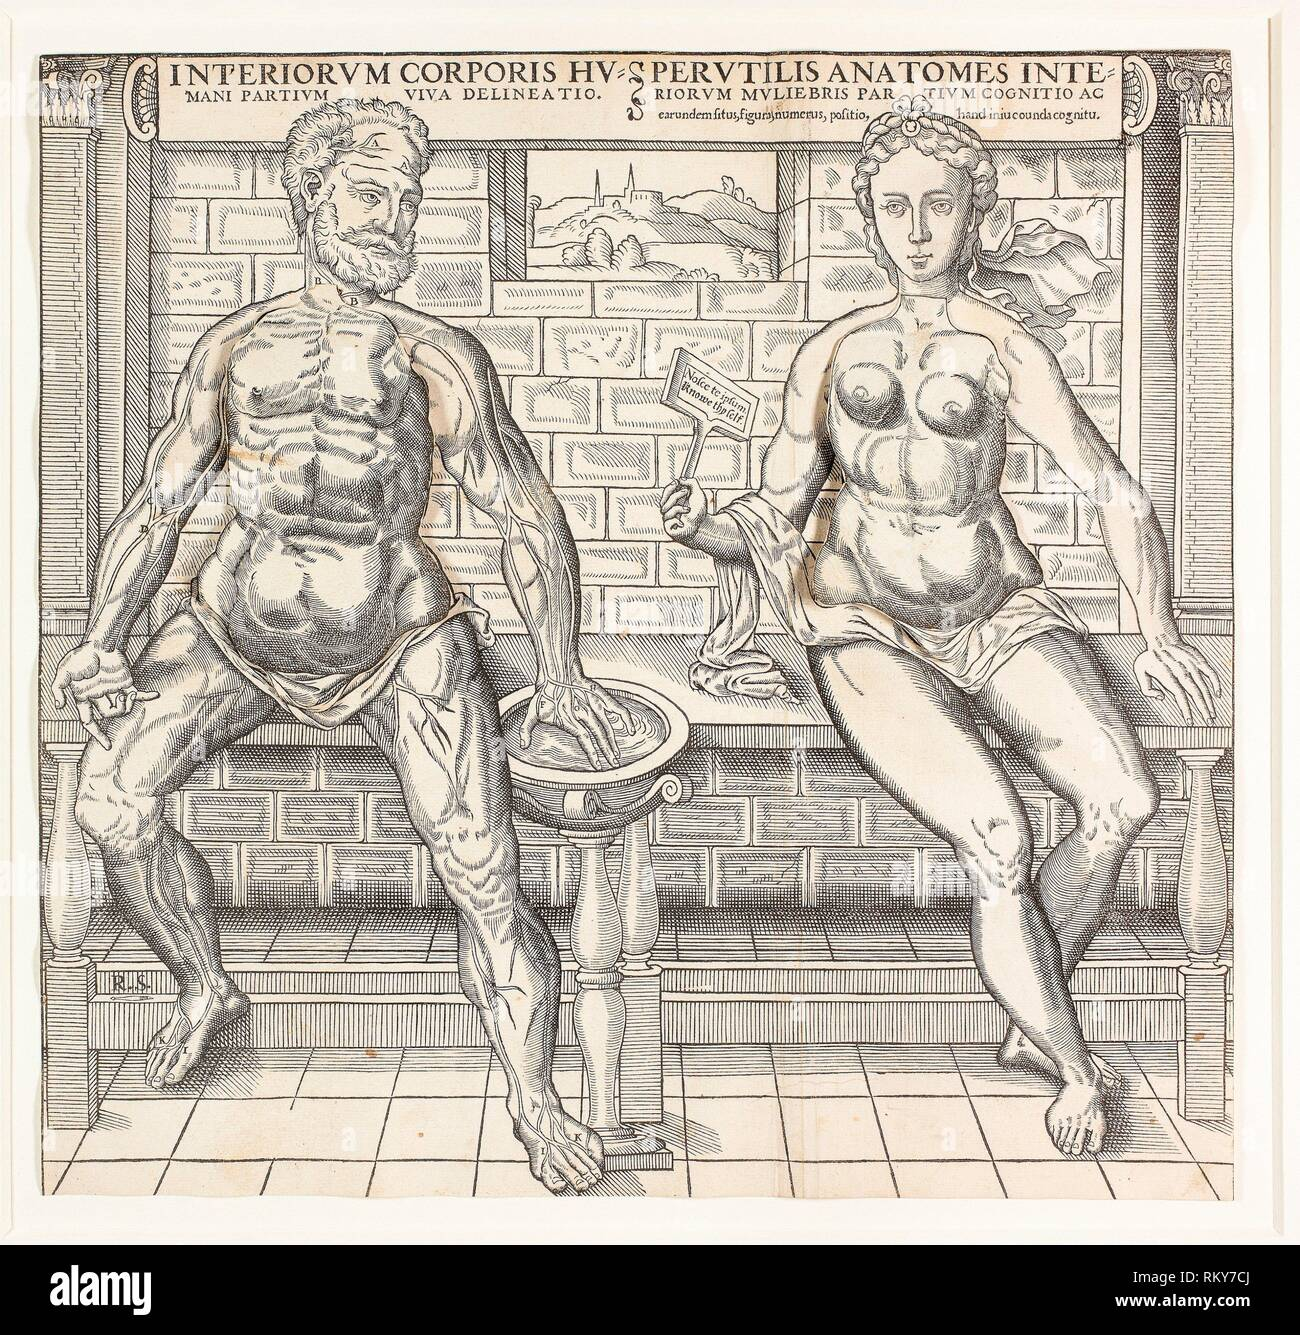 Interiorum corporis humani partium viva delineatio, from the second edition of the Compendiosa totius anatomie delineation - 1555/59 - Monogrammist - Stock Image